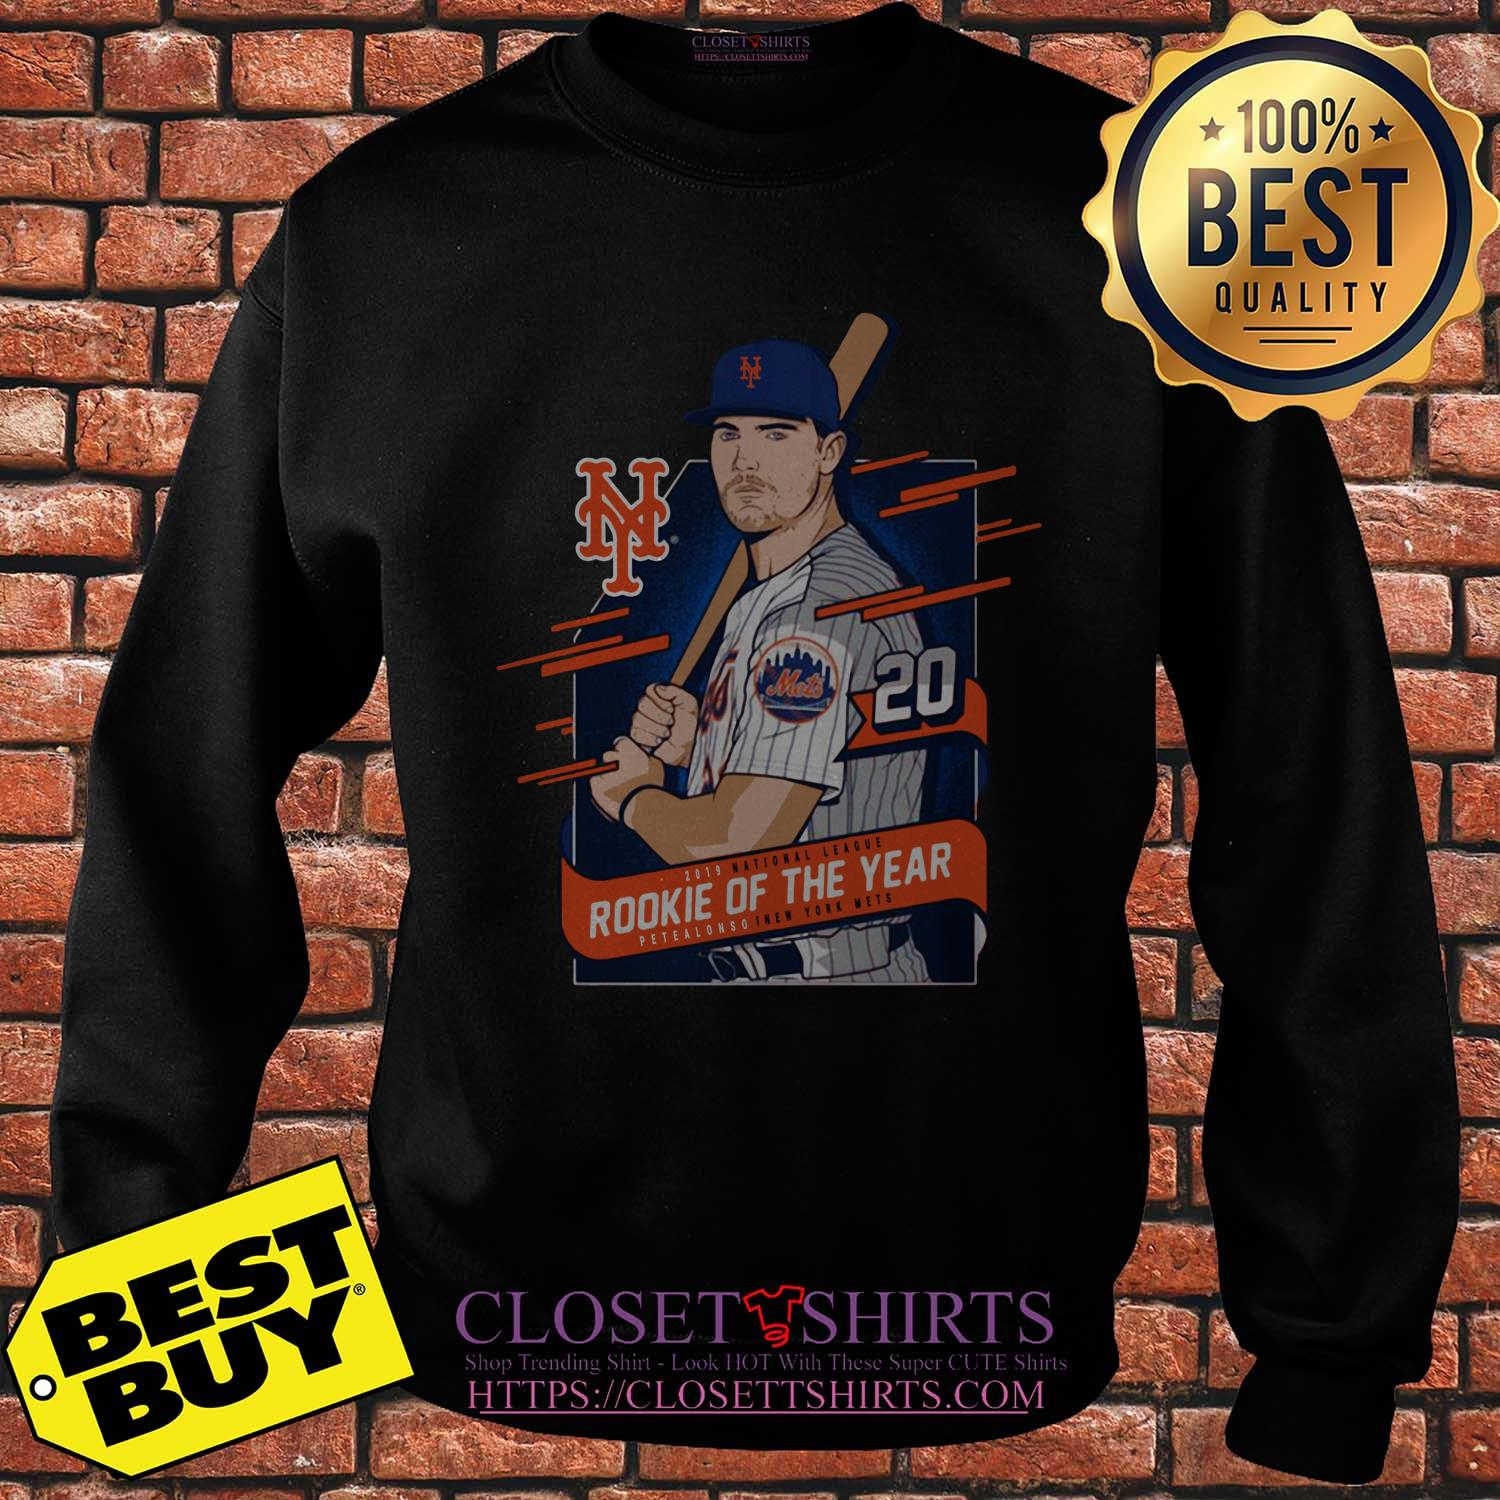 Pete Alonso New York Mets 2019 National League Rookie Of The Year sweatshirt